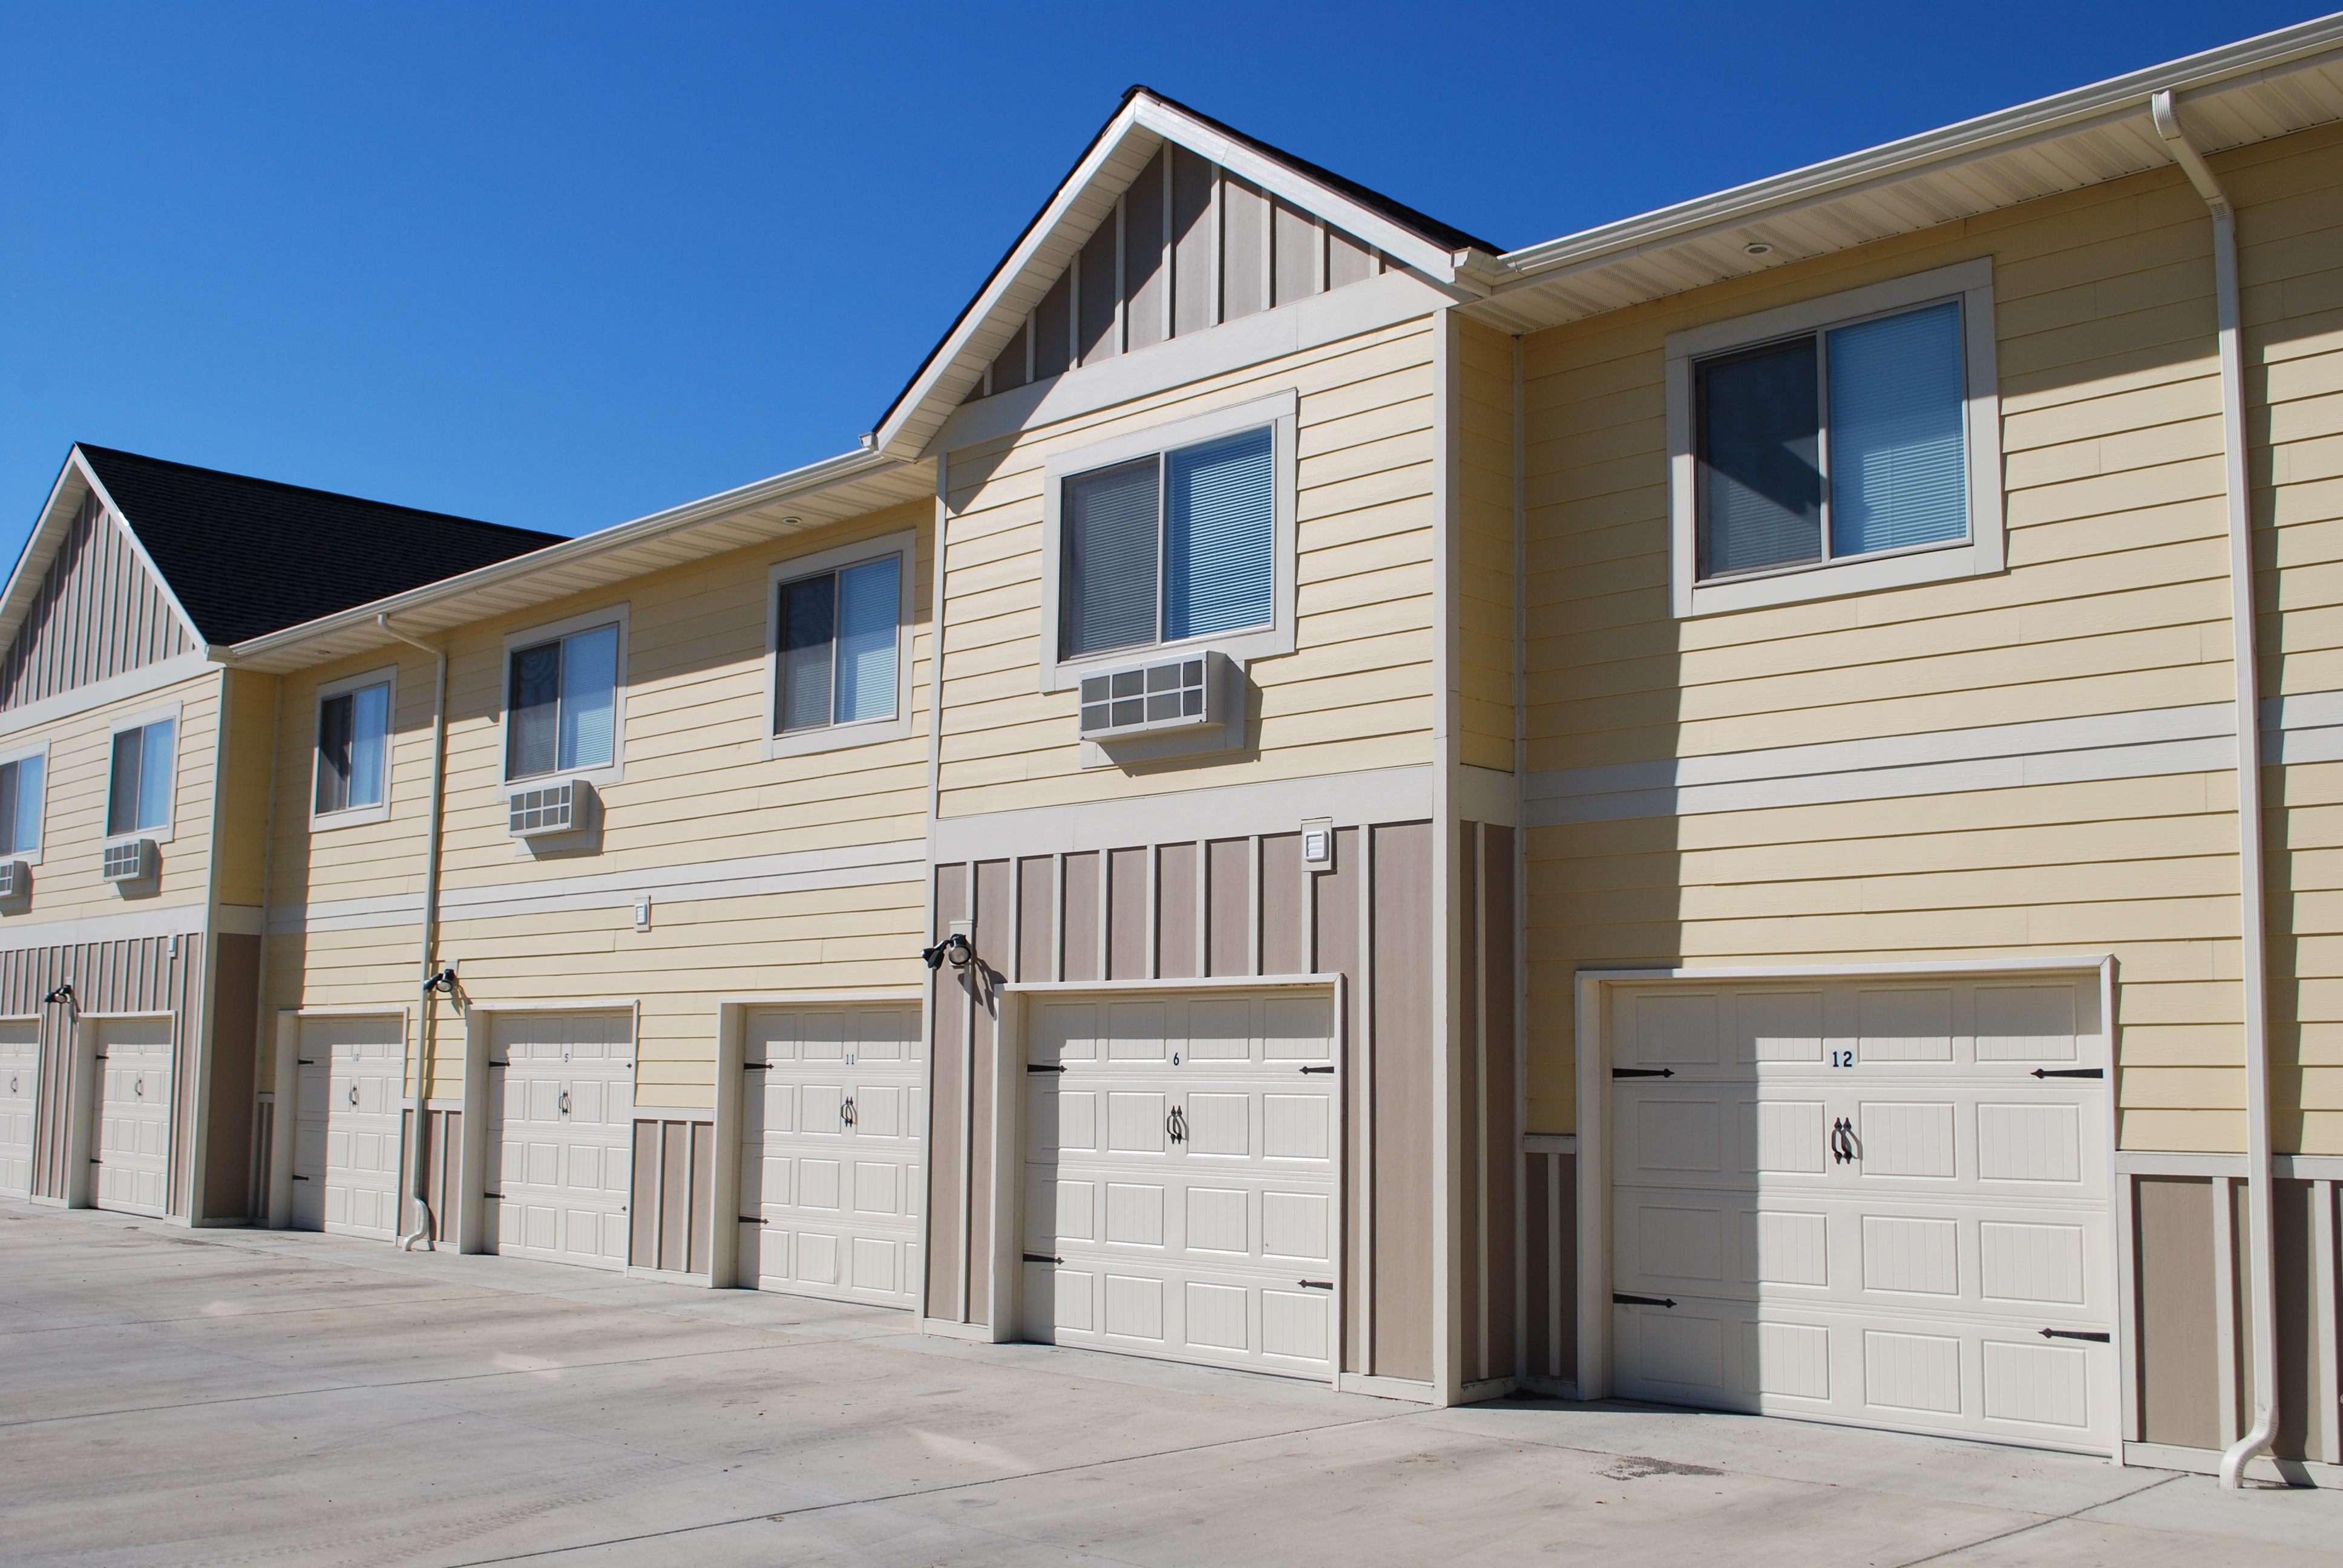 Happy Homes Apartments image 5